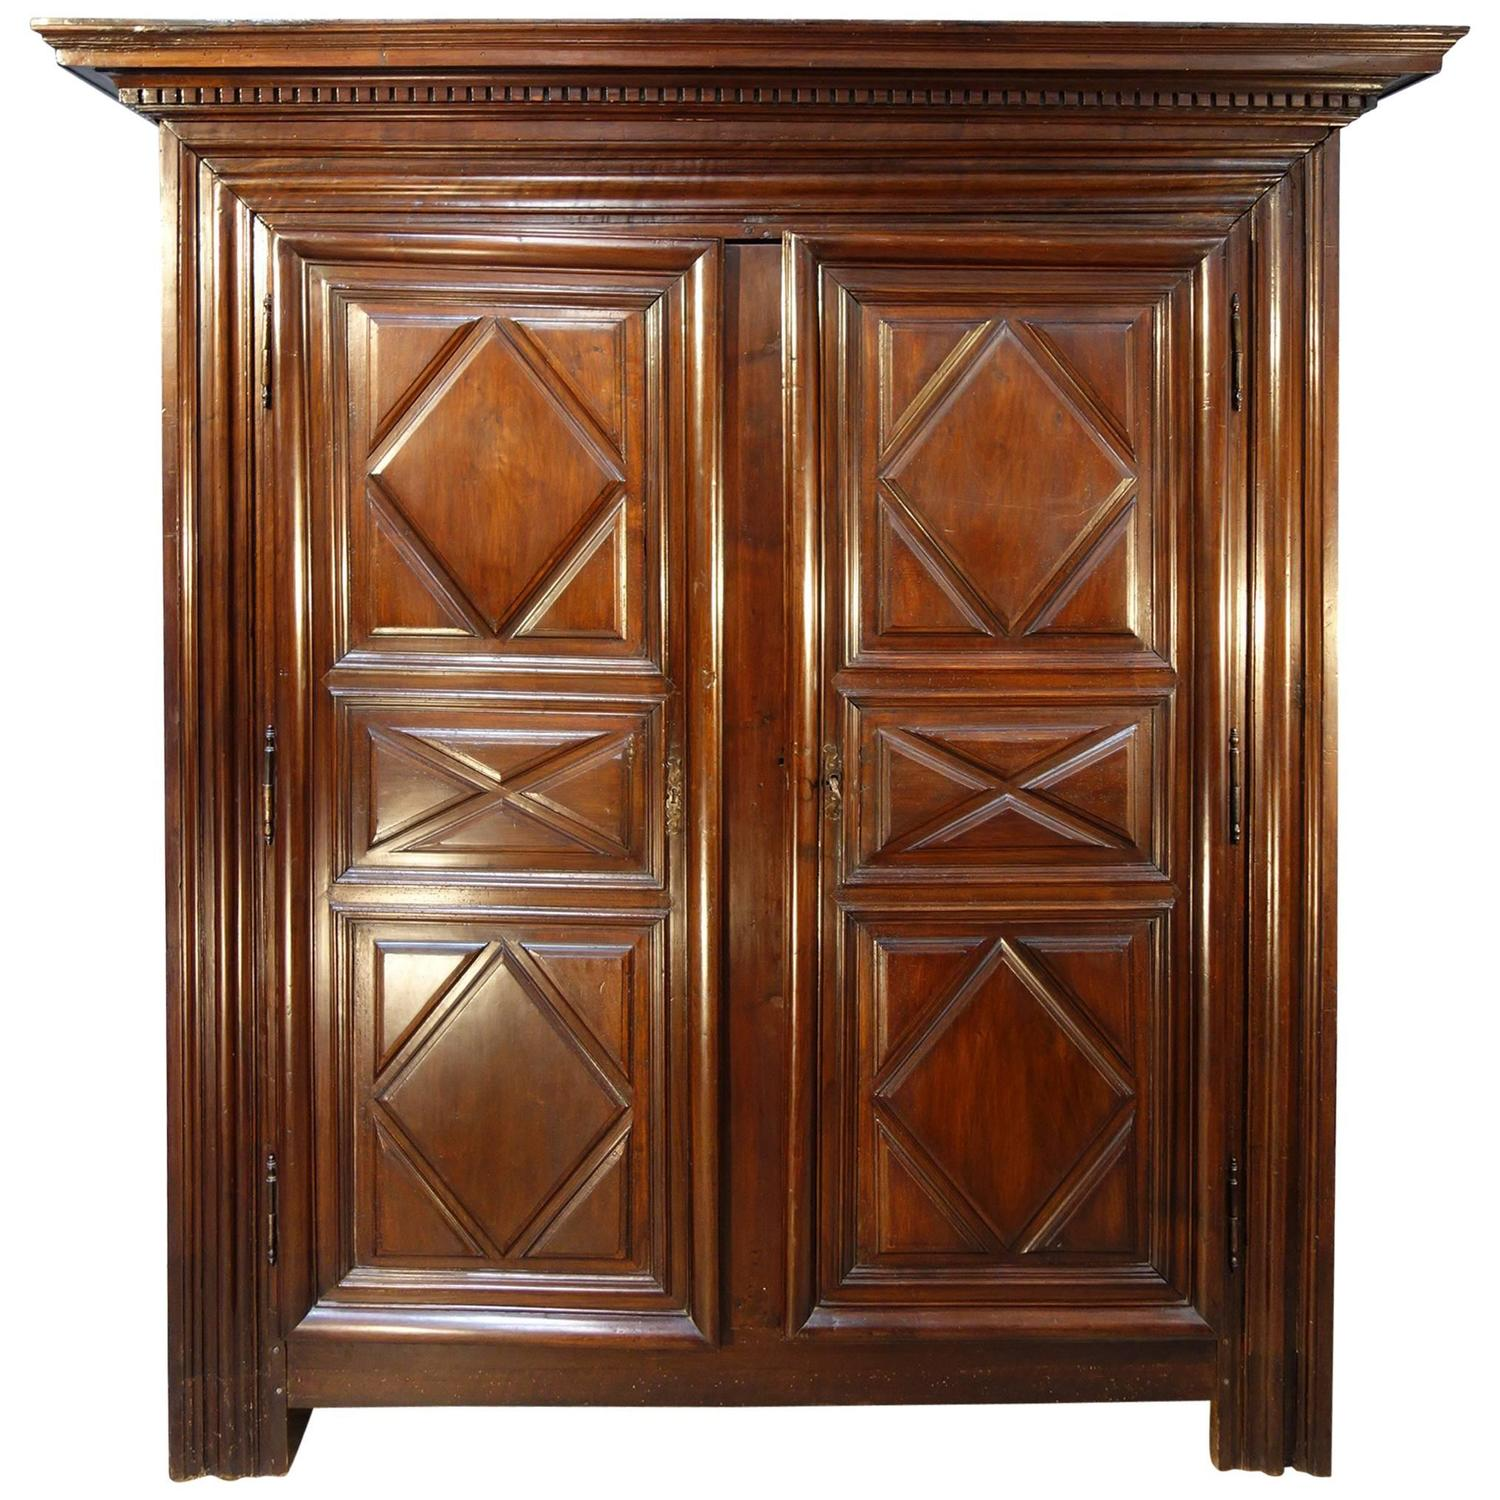 17th century louis xiii walnut armoire at 1stdibs. Black Bedroom Furniture Sets. Home Design Ideas